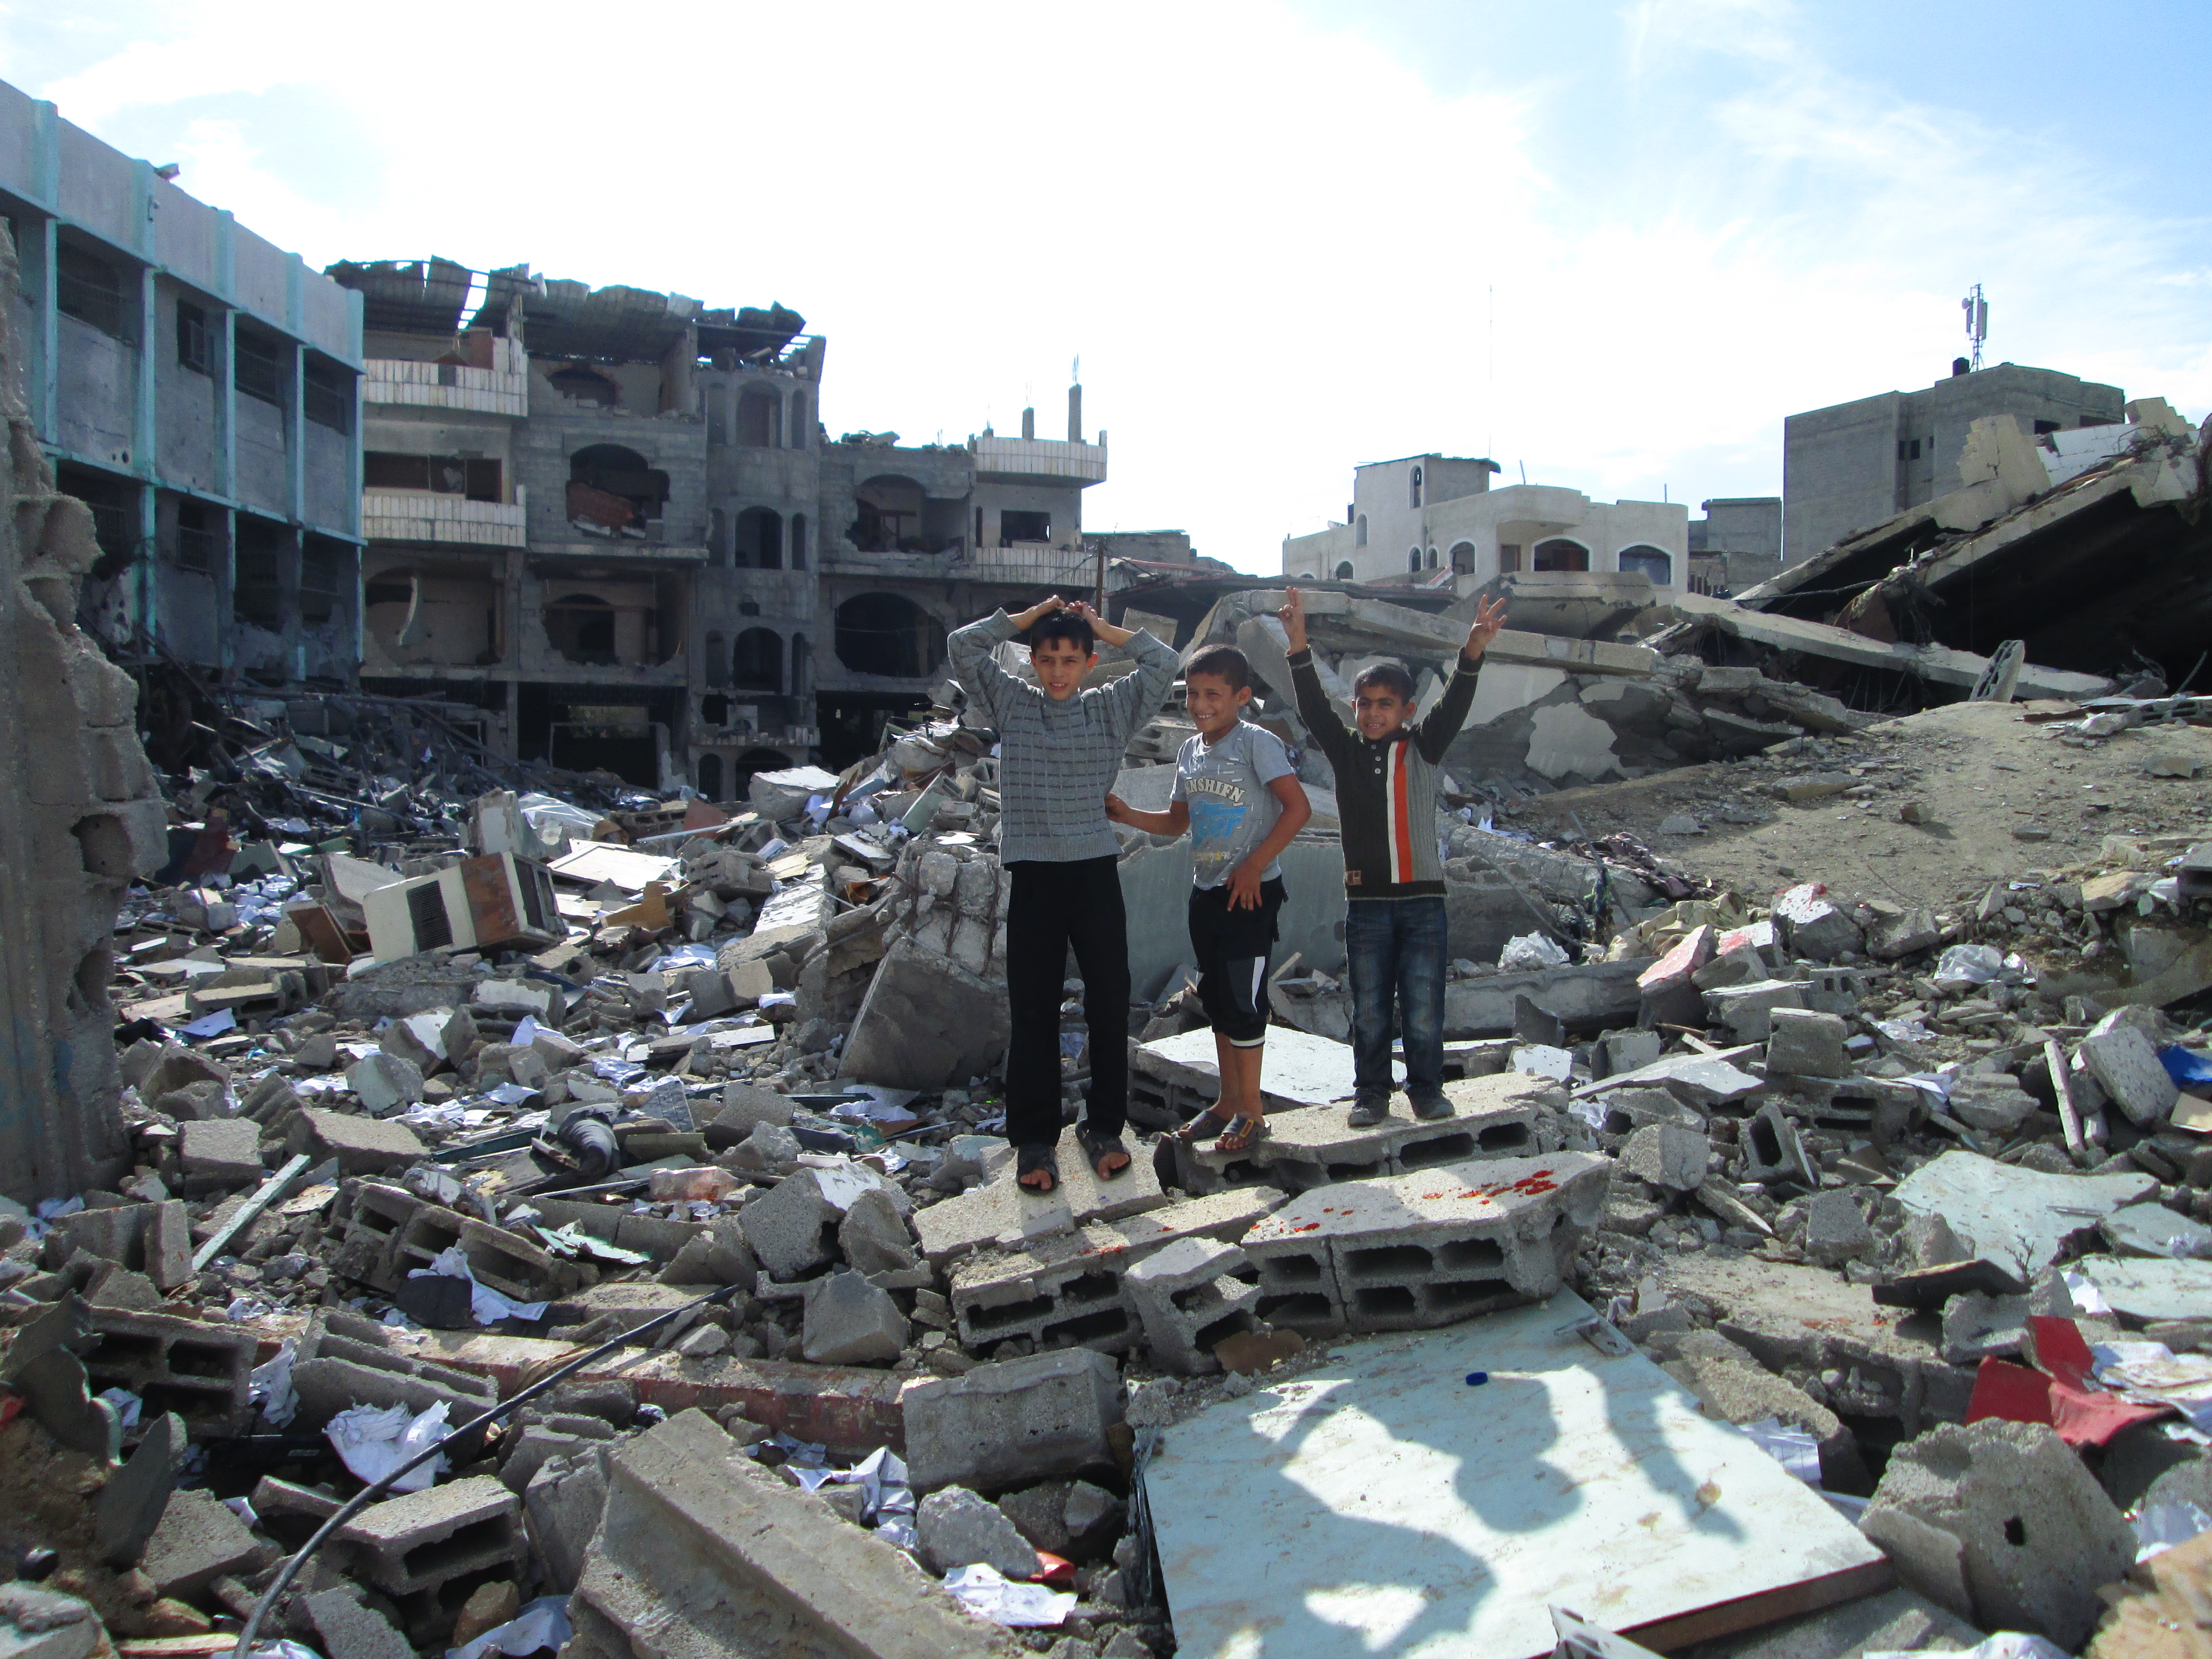 Gazan children pose on the ruins of the bombed Ministry of the Interior office (an entirely civilian building) in Gaza city three days after the end of Israel's bombing campaign. —Photo by Andy Beale